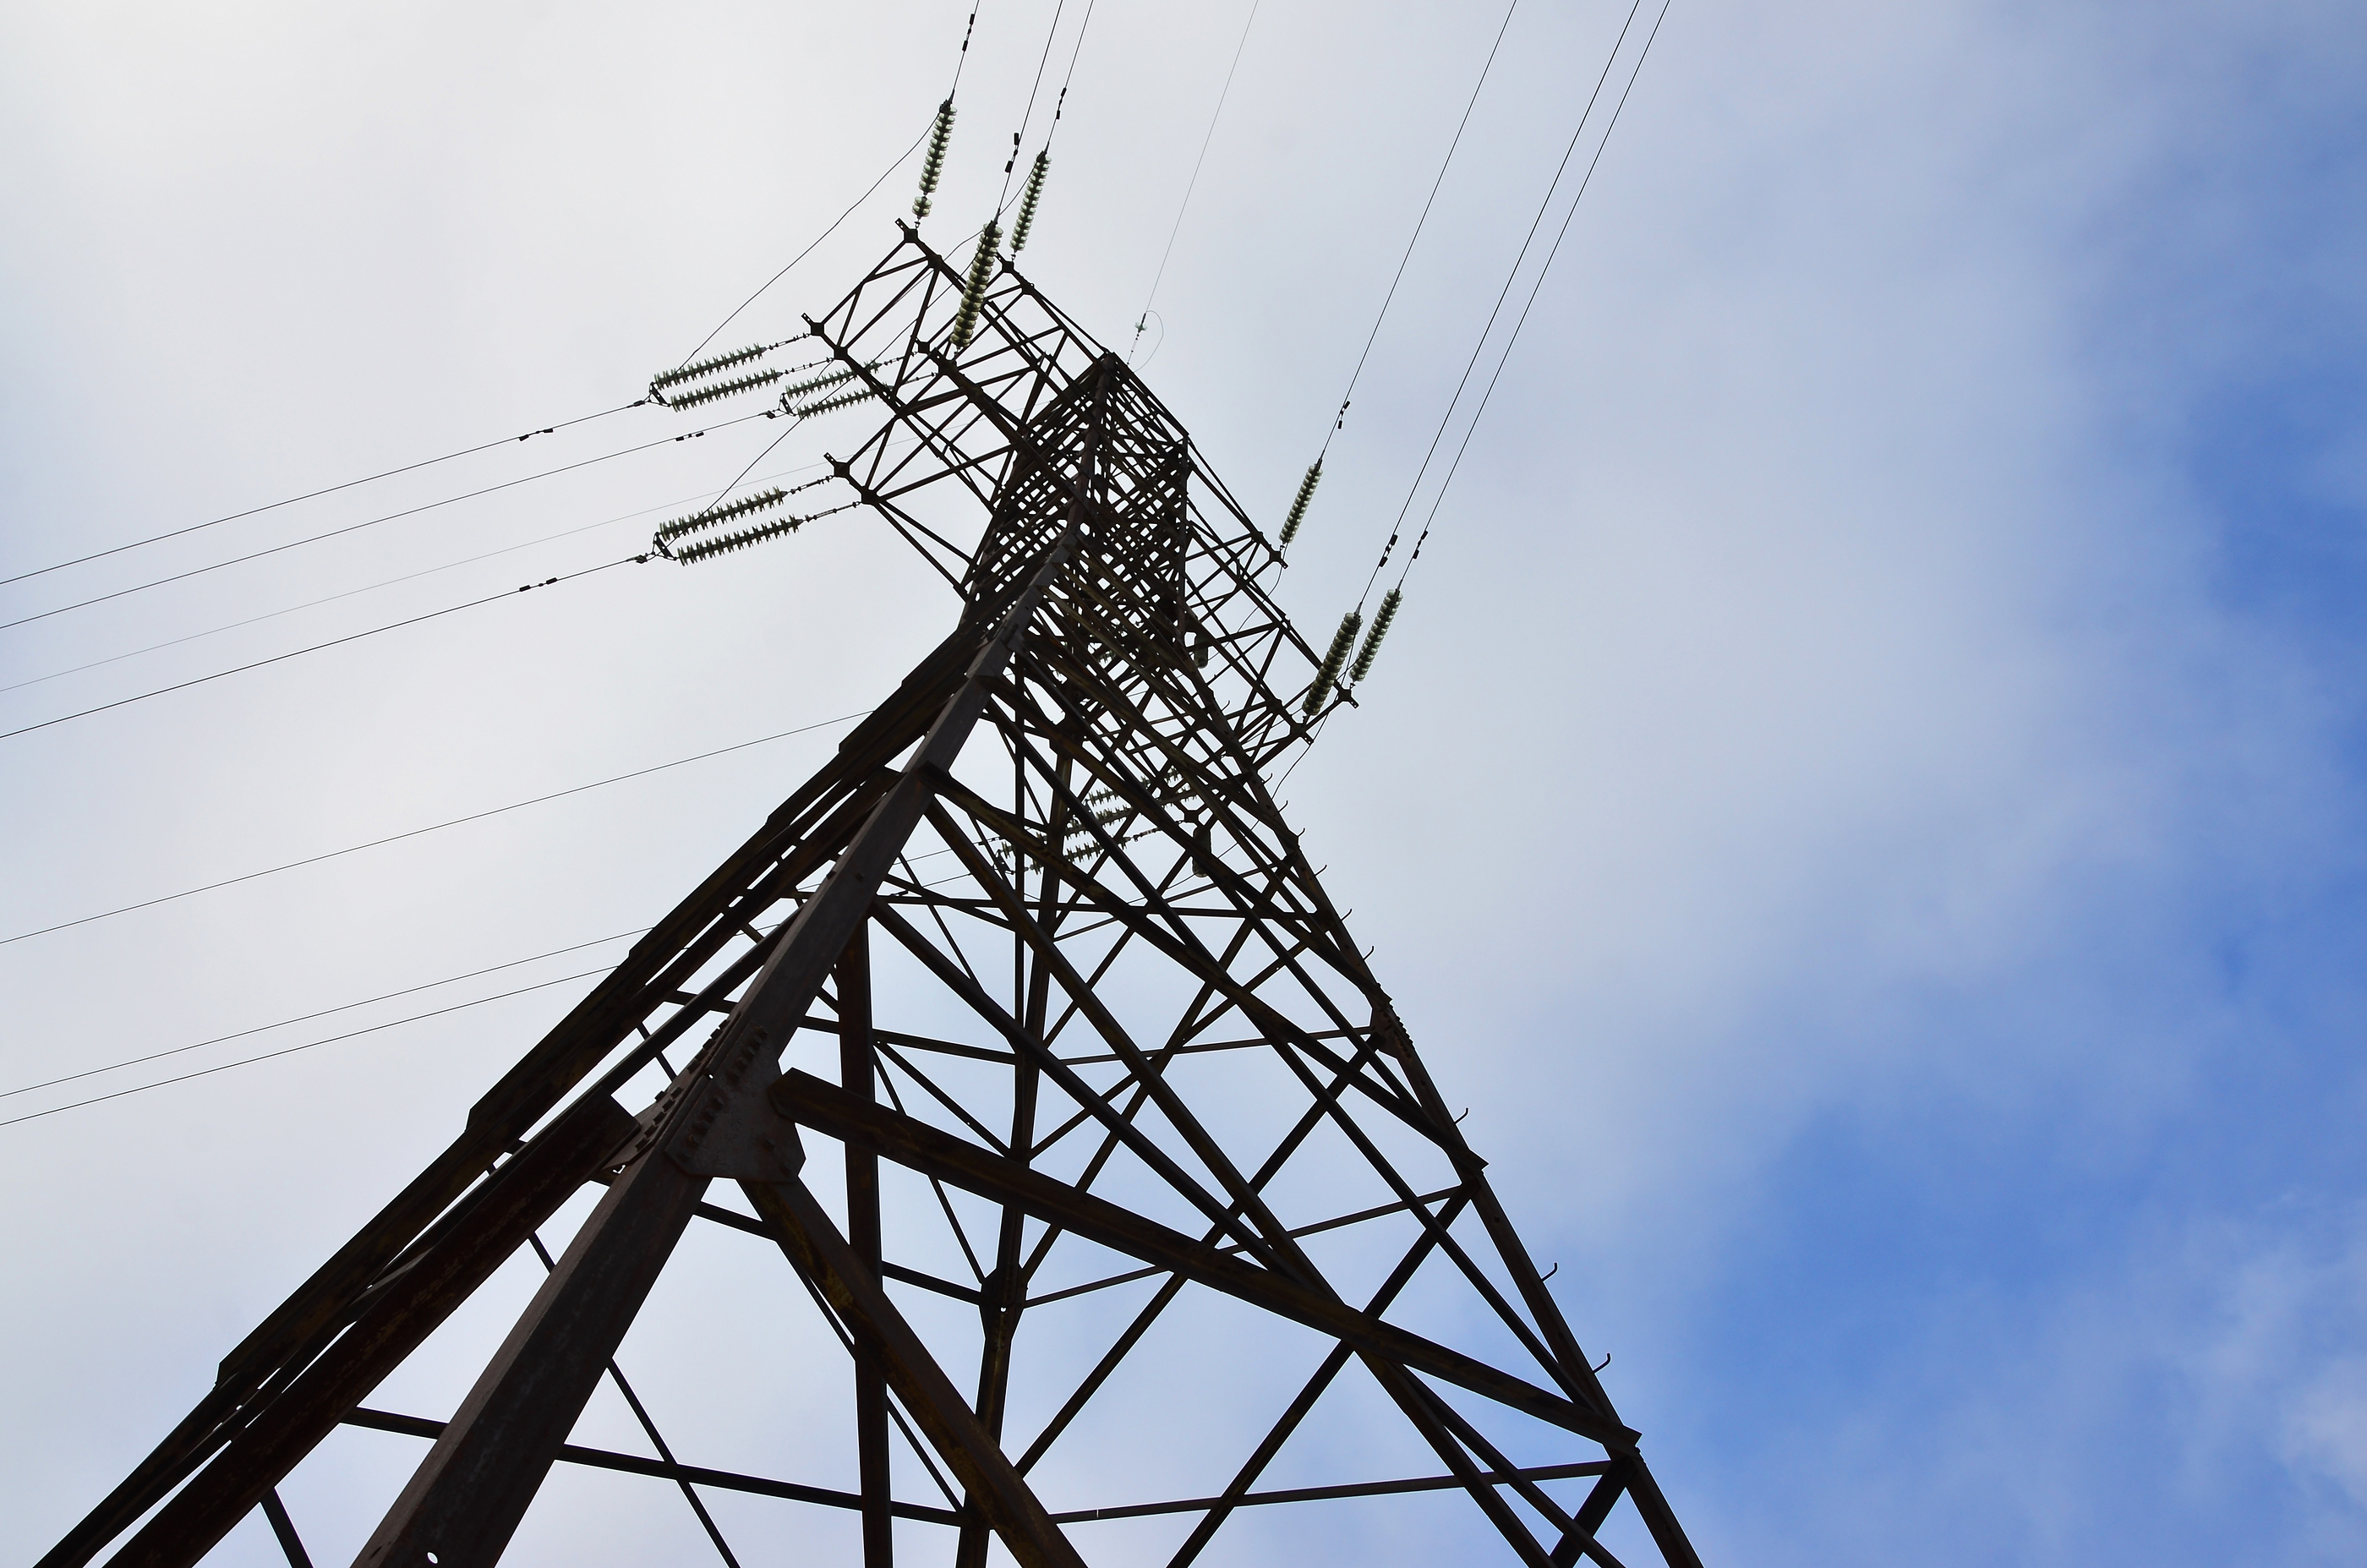 High Voltage Electric Tower. Electricity Transmission Pylon